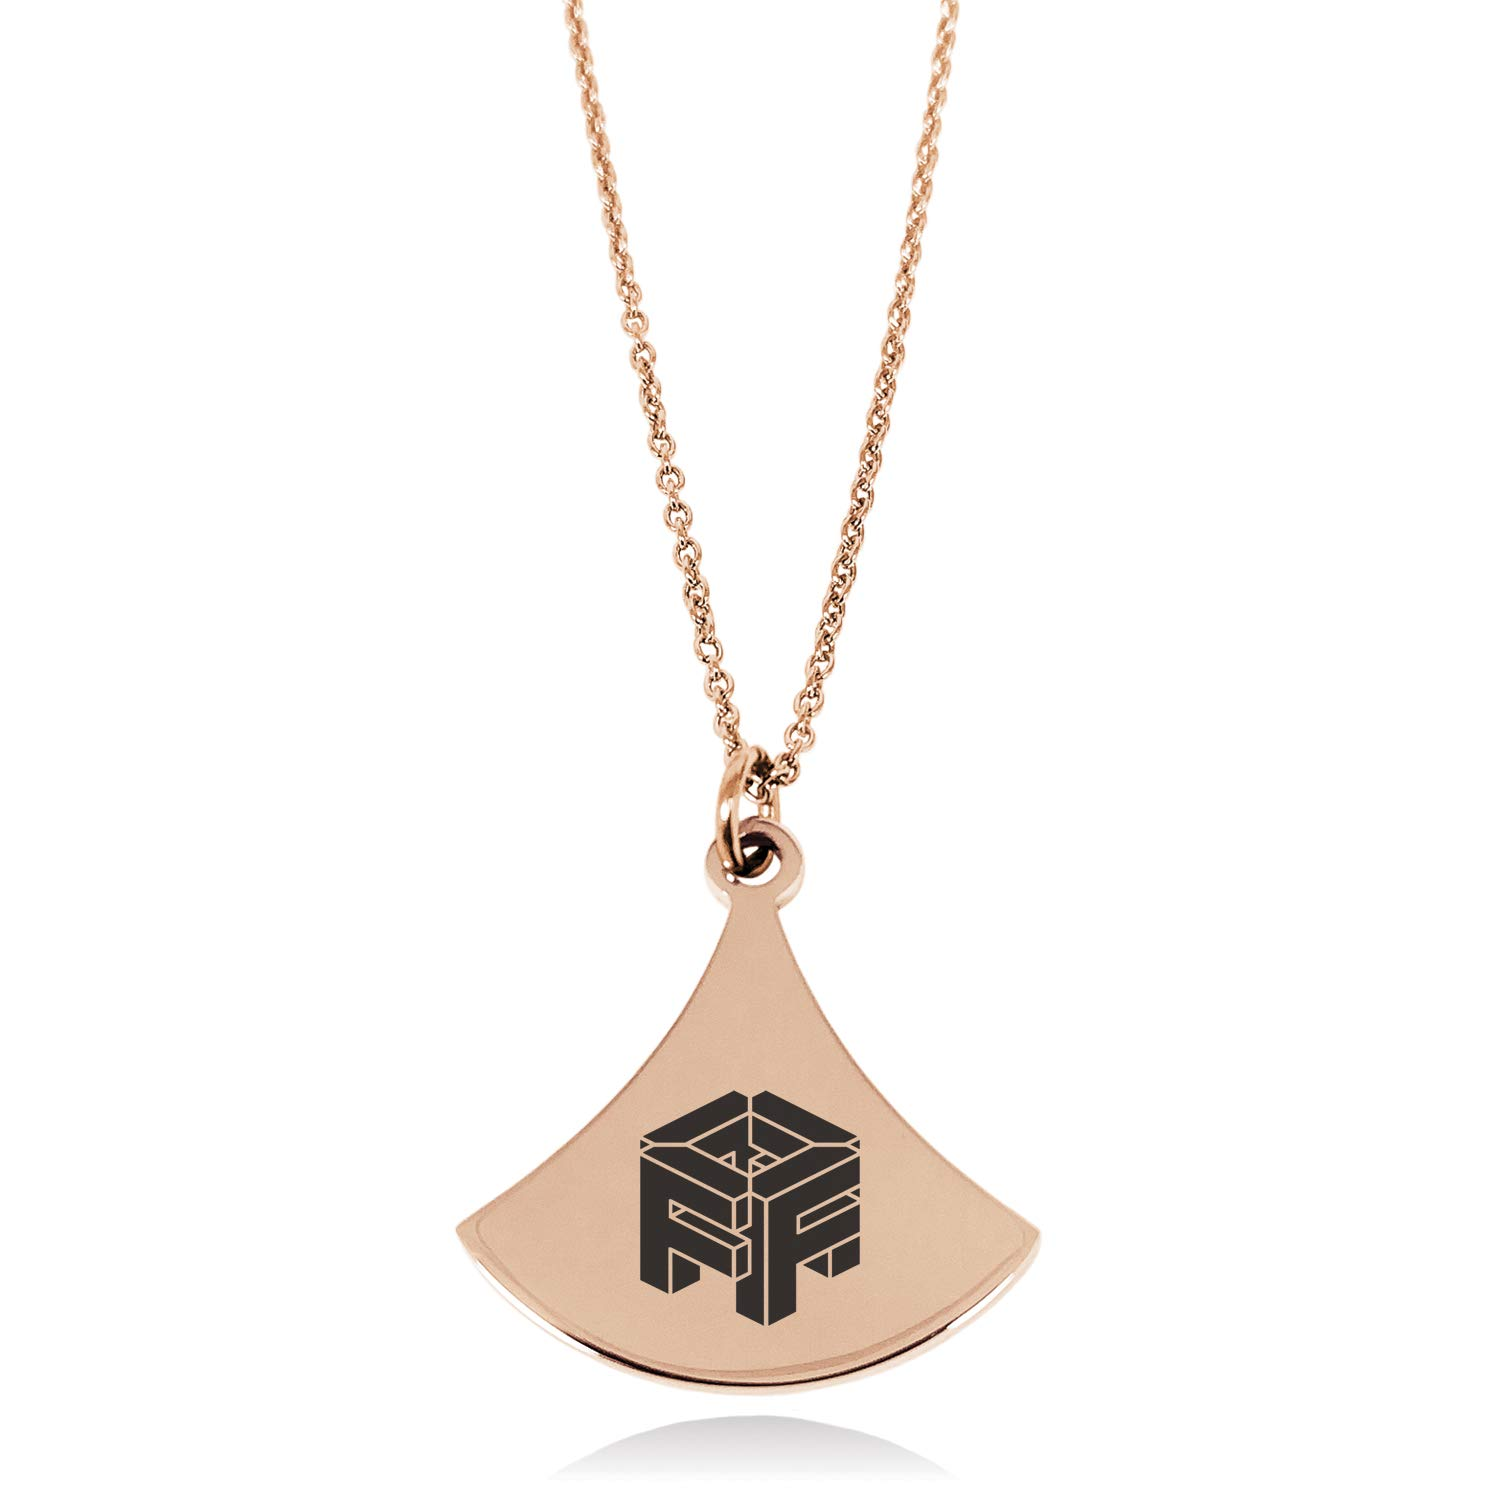 Stainless Steel Letter F Initial 3D Cube Box Monogram Pendulum Curved Triangle Charm Pendant Necklace